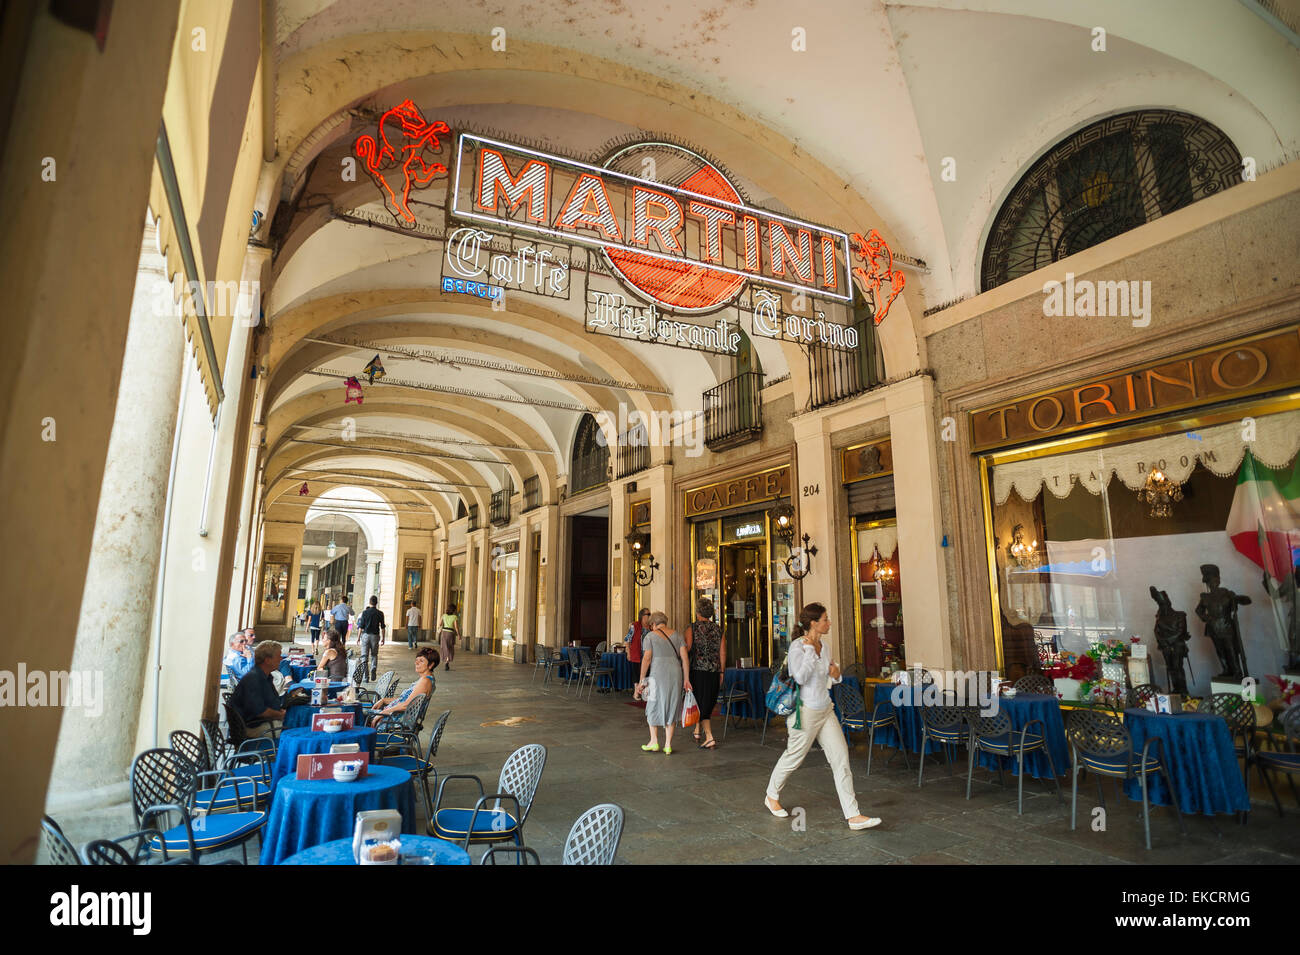 Turin cafe, view of an arcade in the Piazza San Carlo showing the famous Caffe Torino, Turin ,Italy - Stock Image